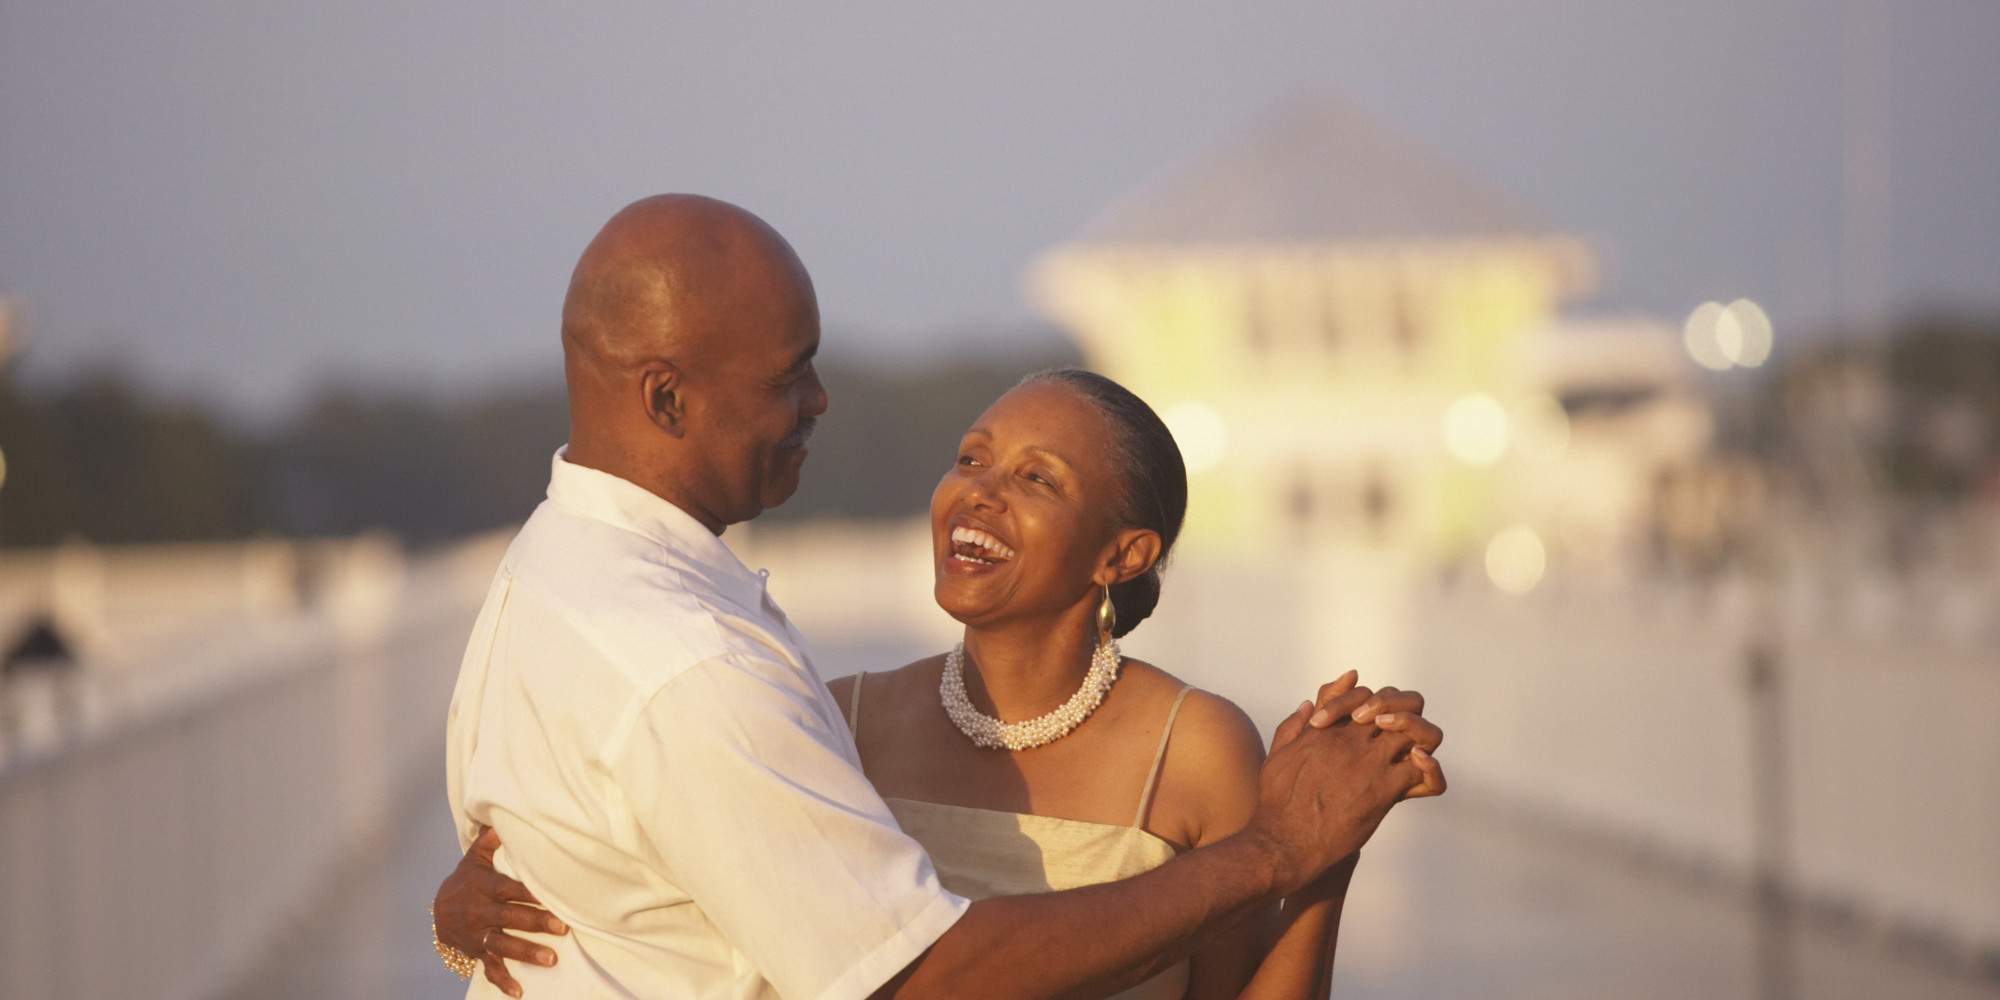 Finding love after 50 dating blueprint